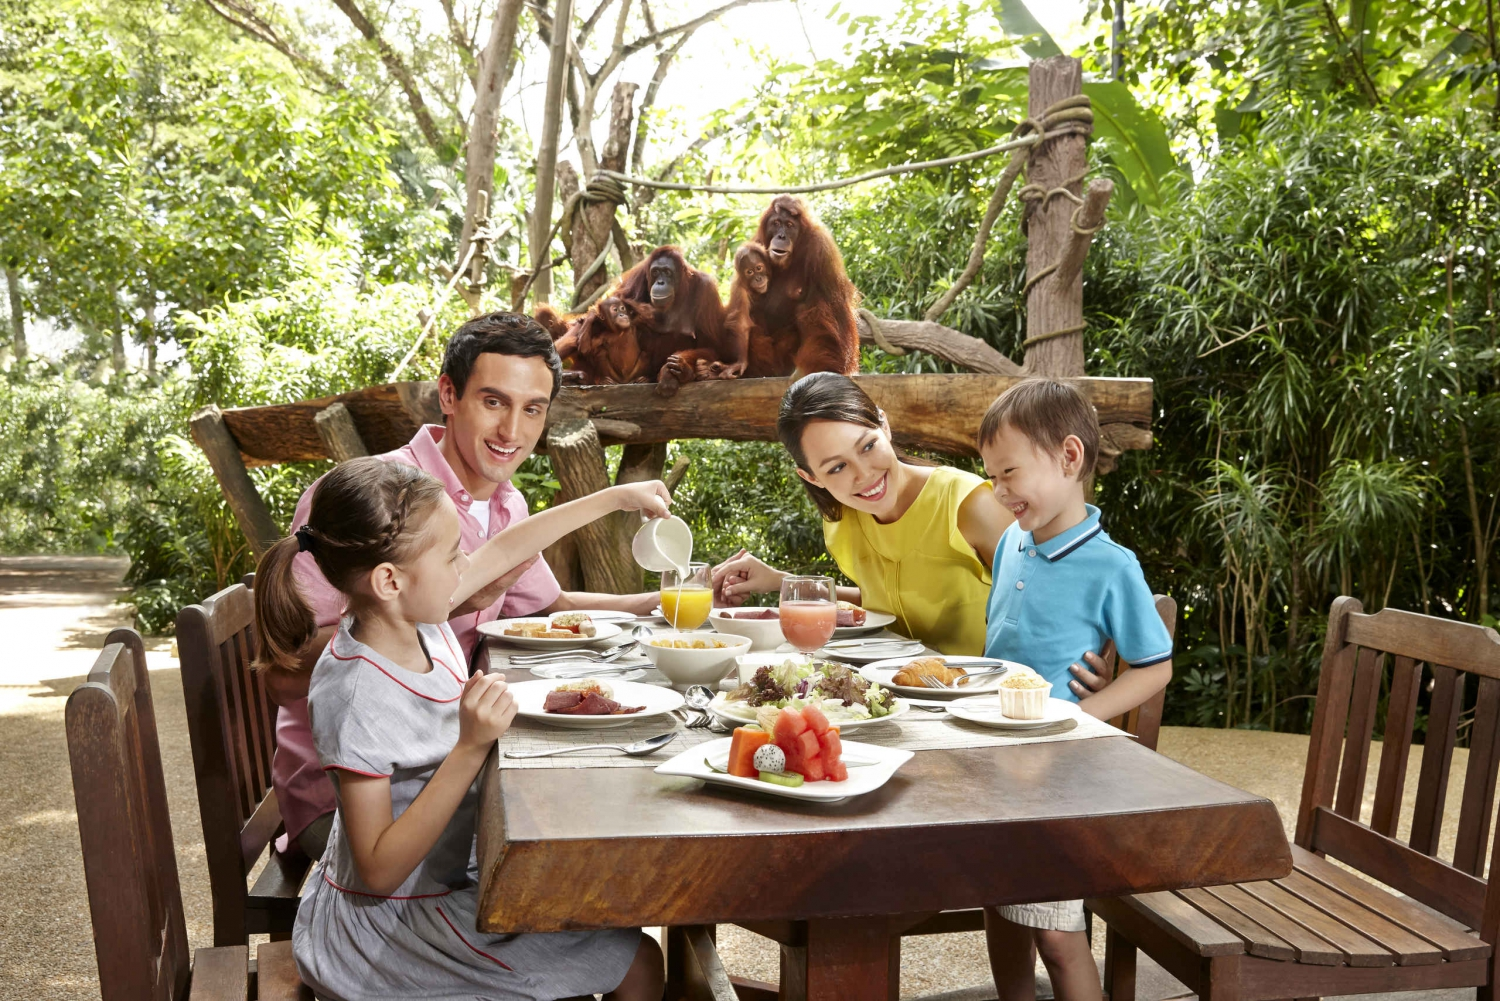 Singapore Zoo: Jungle Breakfast with Wildlife & Entry Ticket